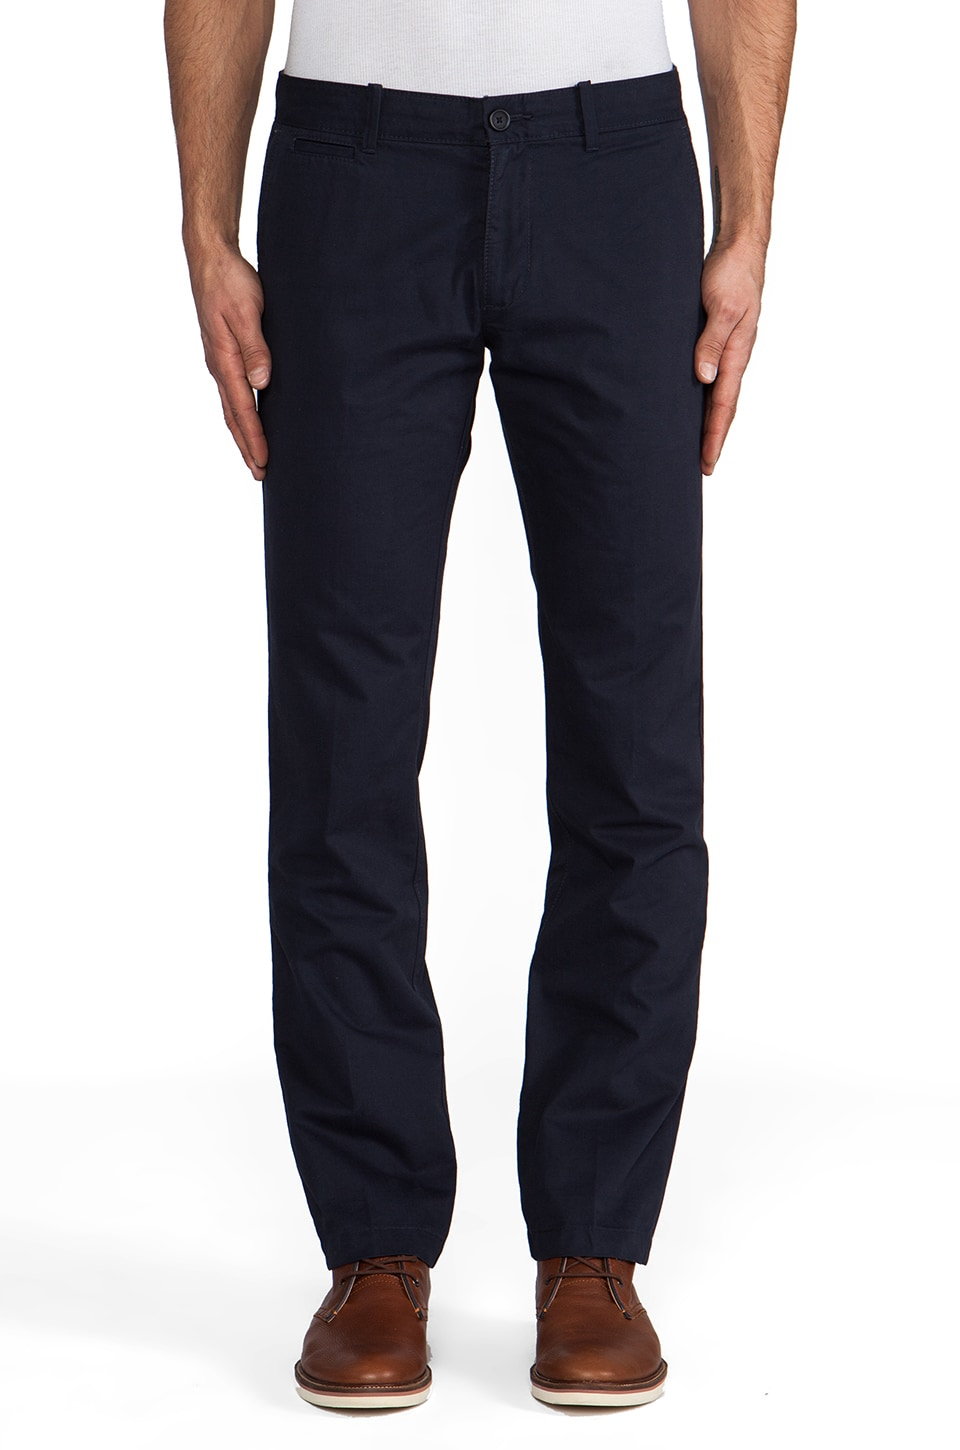 Penguin Straight Fit Chino in Dark Sapphire